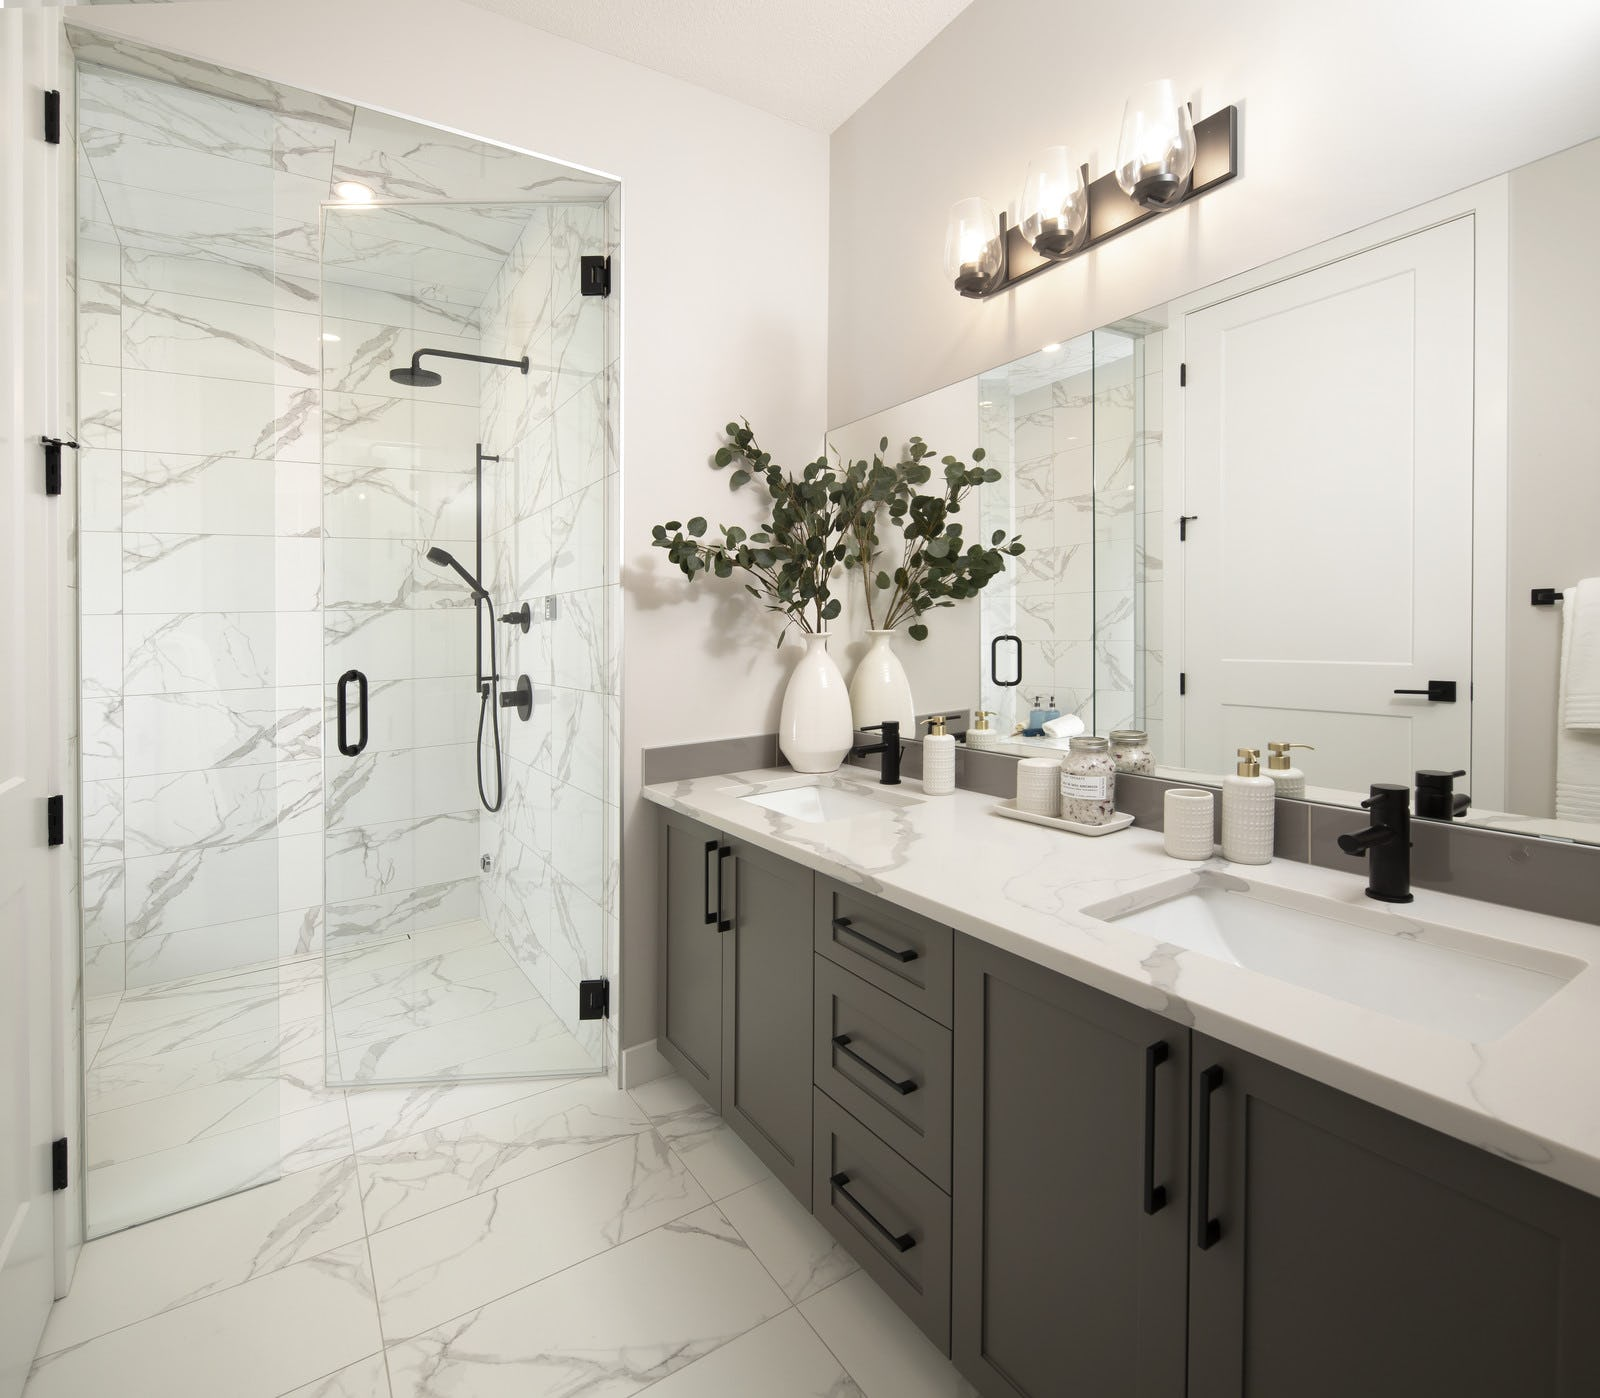 White ensuite bathroom with brown cabinets and curbless shower